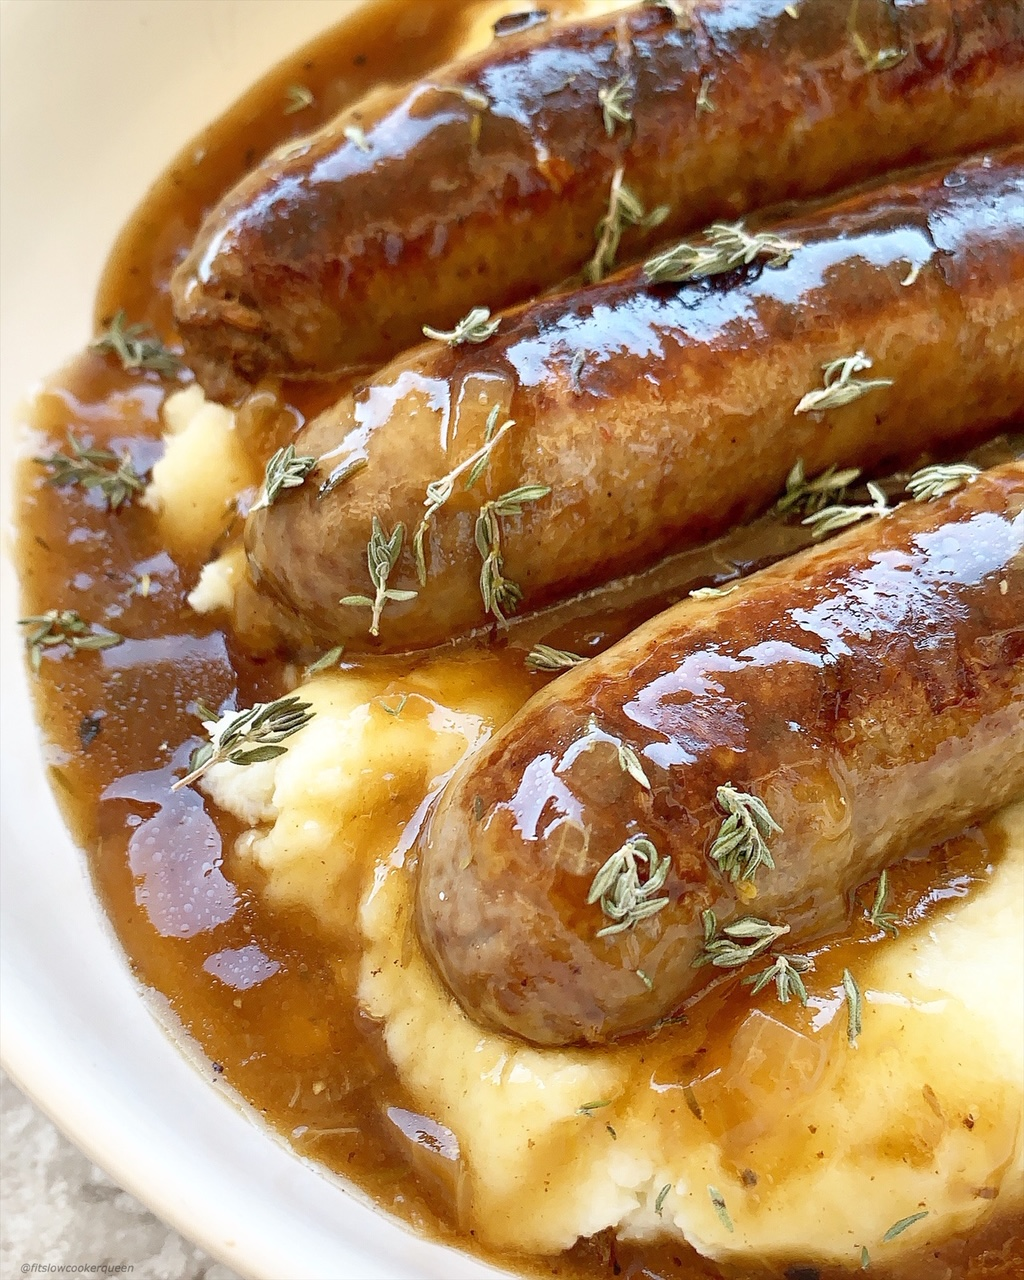 Slow CookerInstant Pot Bangers & Mash (Low-Carb, Paleo, Whole30)